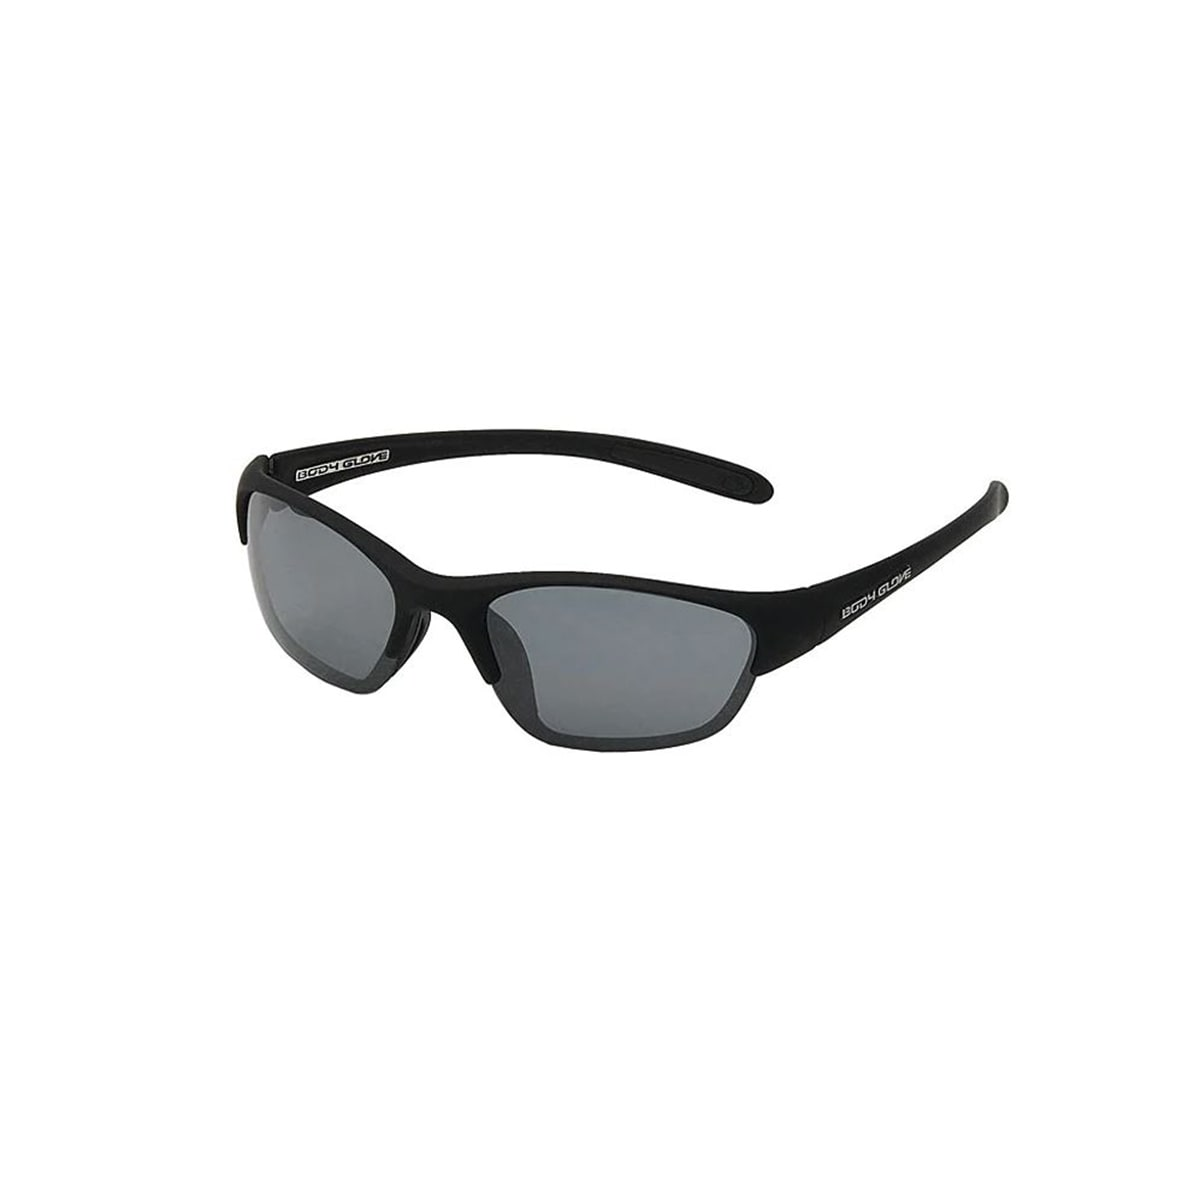 bd87d6139 Shop Body Glove Calabash Bay Polarized Sunglasses - Black/Smoke - ONE SIZE  - Free Shipping On Orders Over $45 - Overstock - 24040511